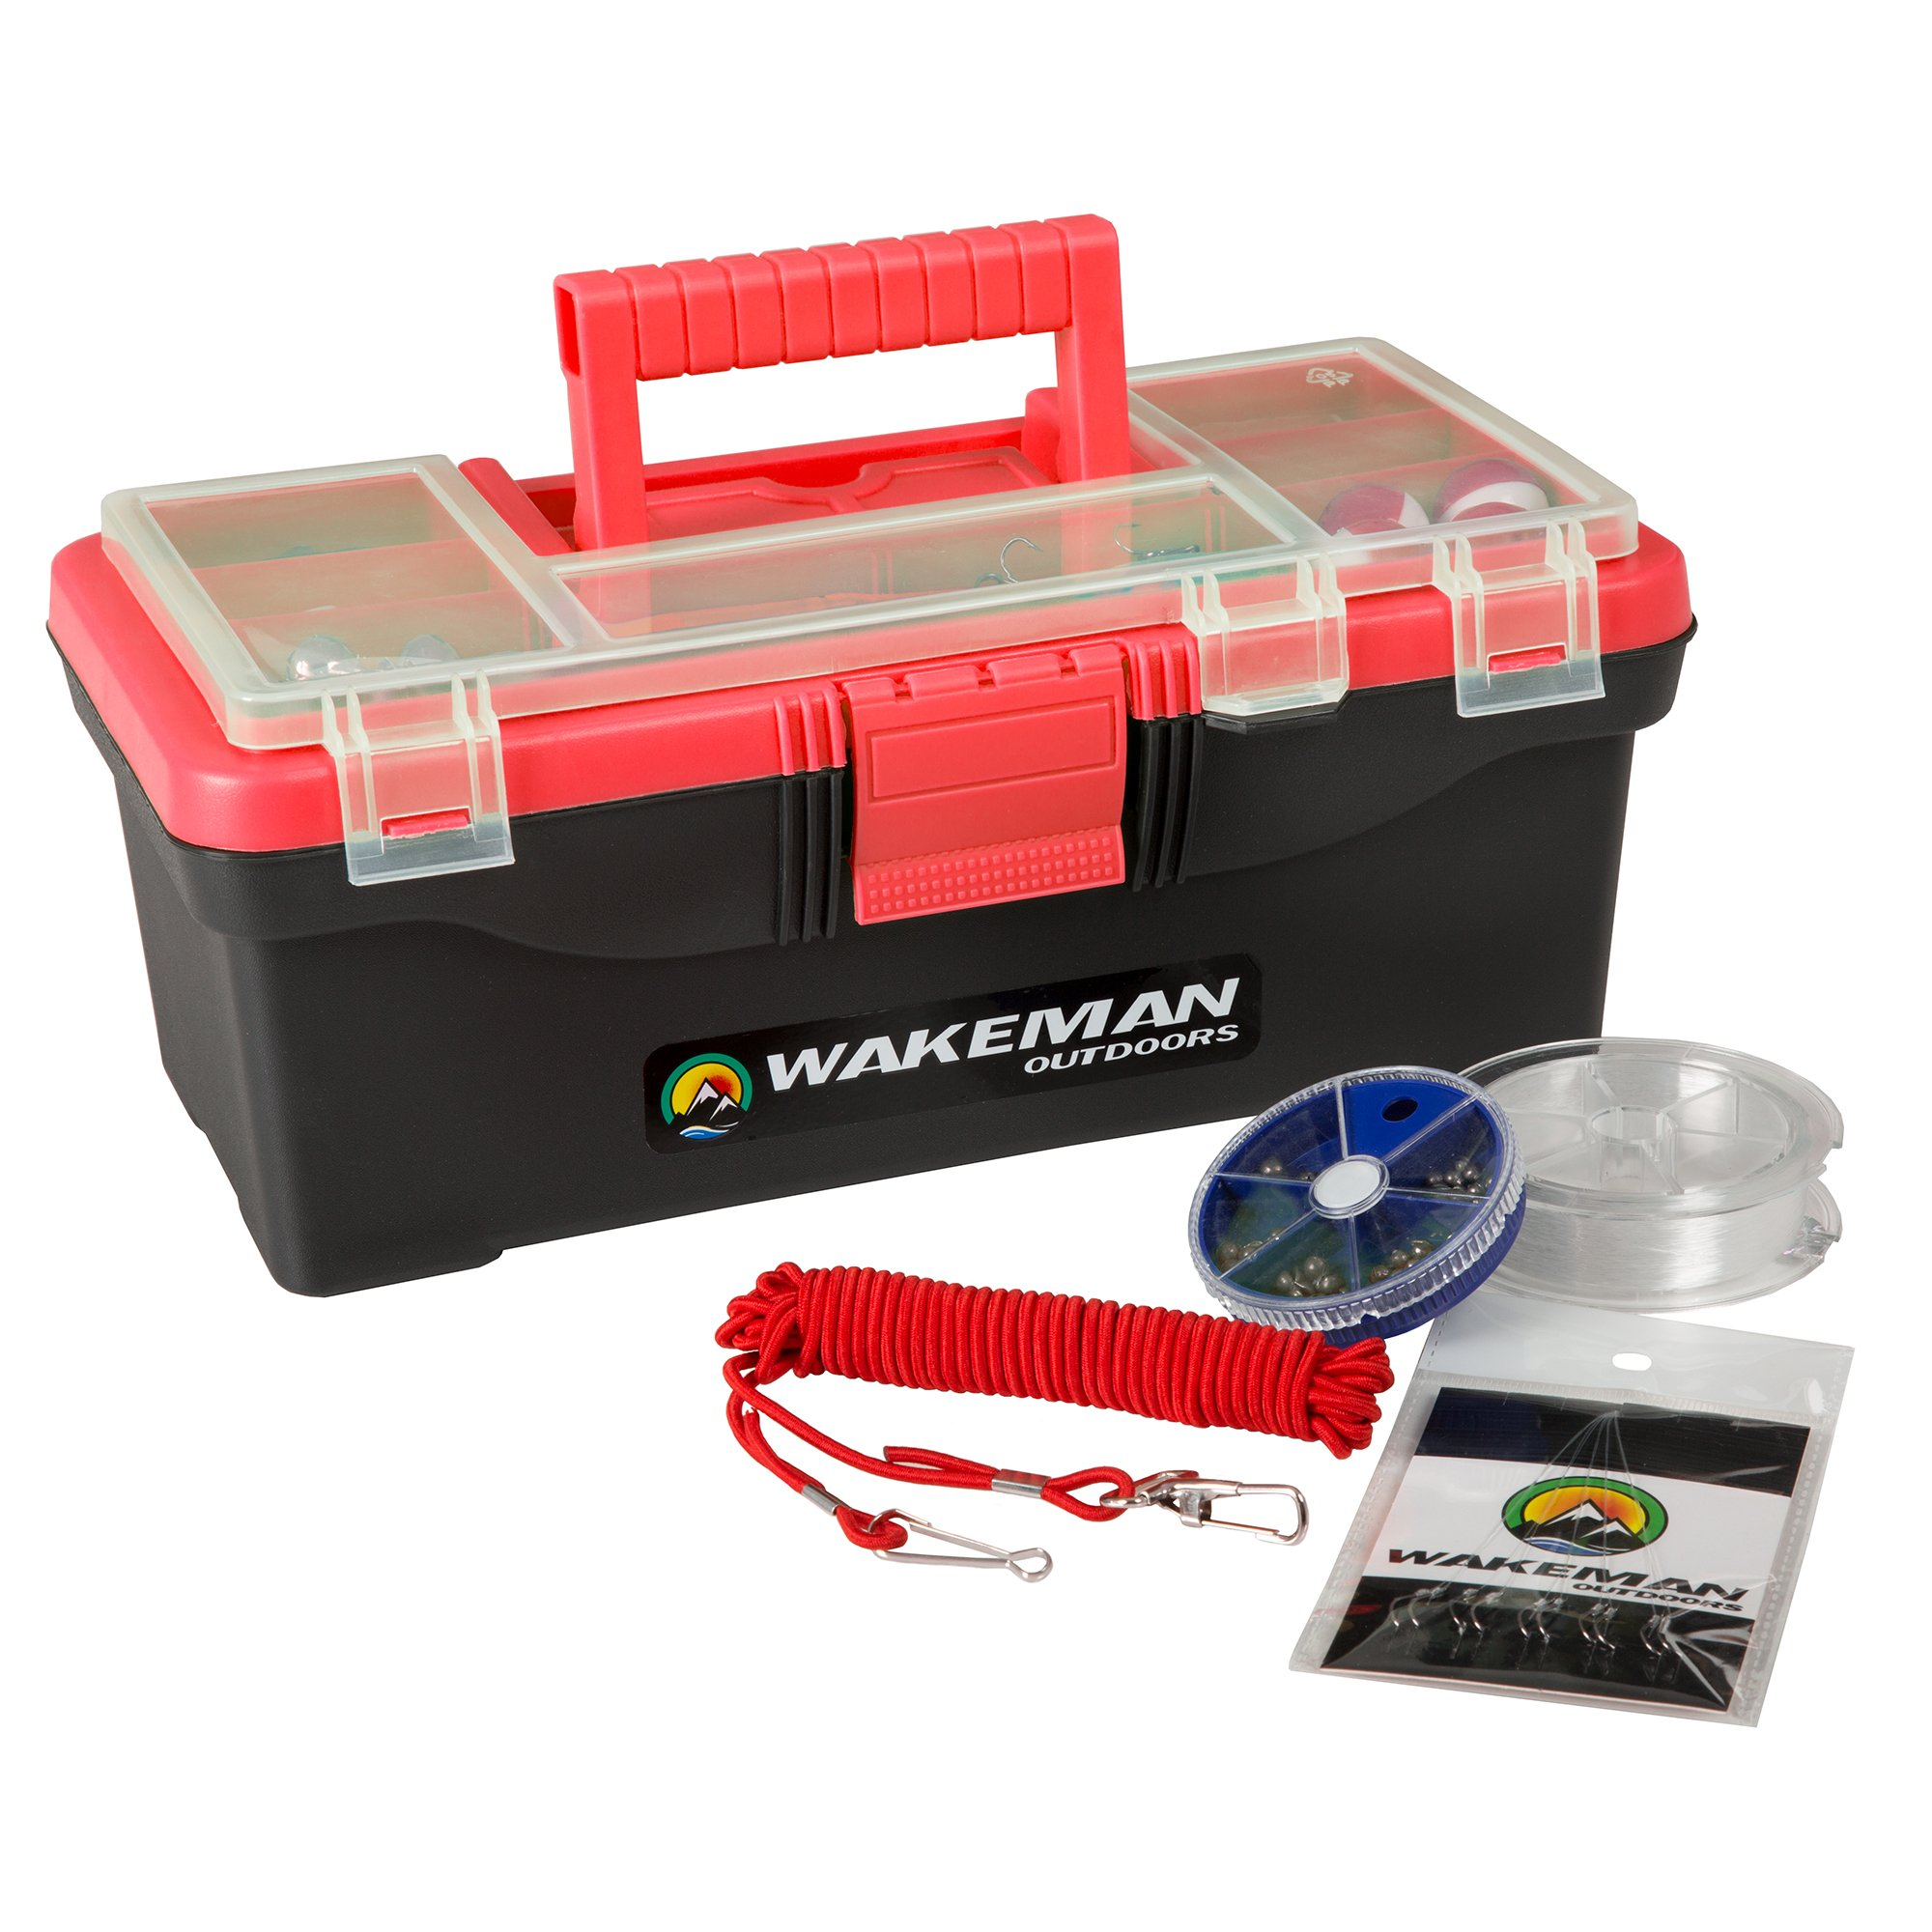 Wakeman Fishing Single Tray Tackle Box- 55 Piece Tackle Gear Kit Includes Sinkers, Hooks Lures Bobbers Swivels and Fishing Line Outdoors Red by Wakeman